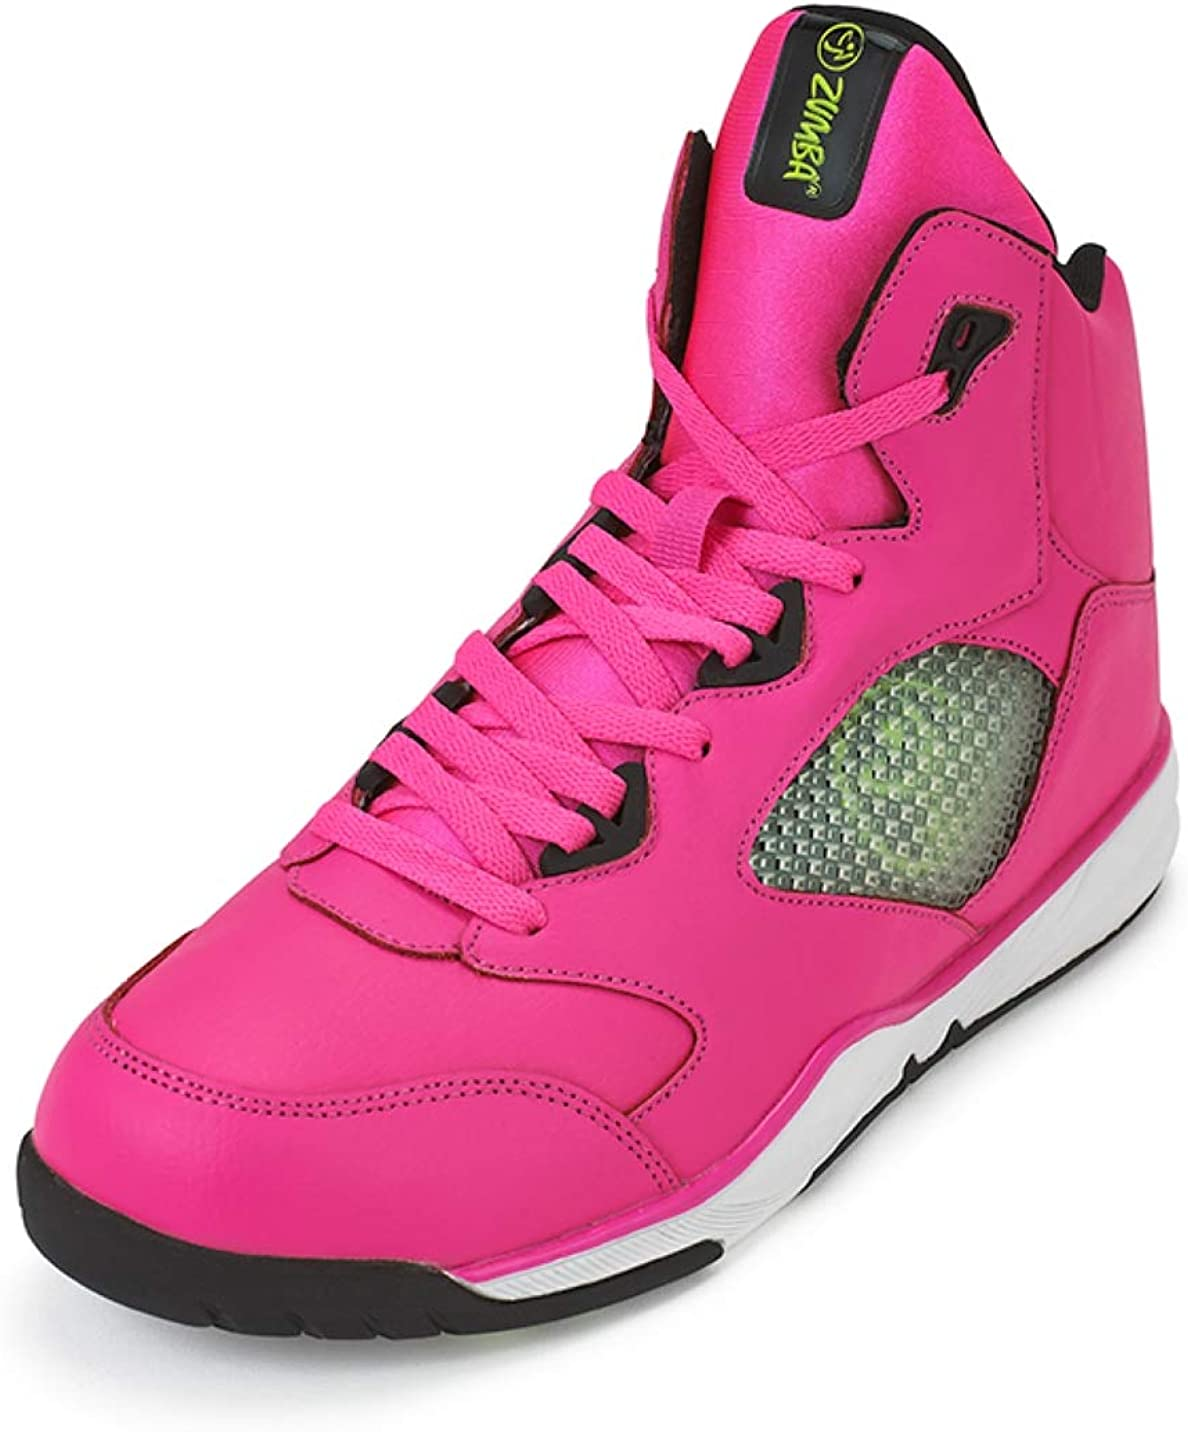 Zumba Fitness Zumba Aktiv Energy Boom High Top Sneakers Tanztraining Workout Tanzschuhe Damen, Zapato de Baile para Mujer